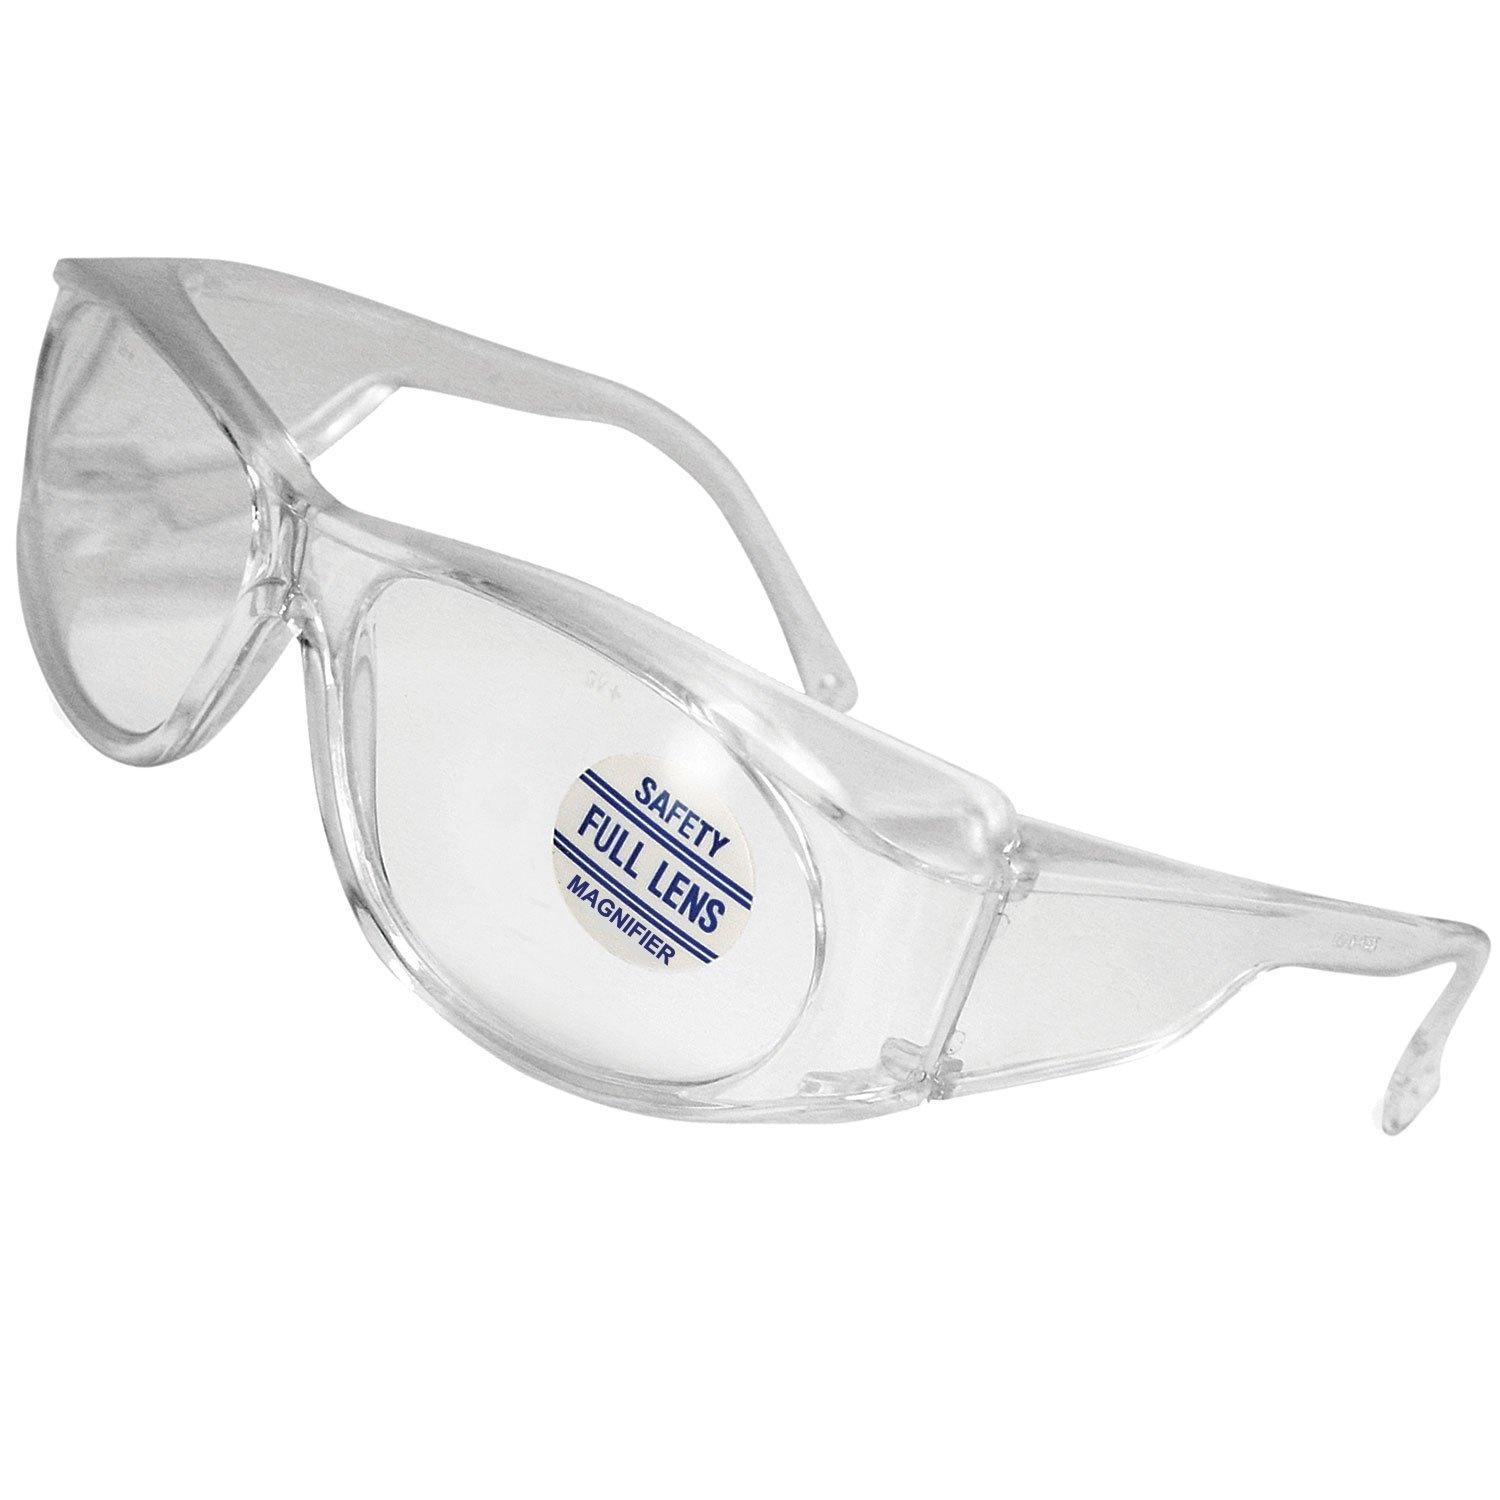 Mag-Safe Reader Safety Glasses